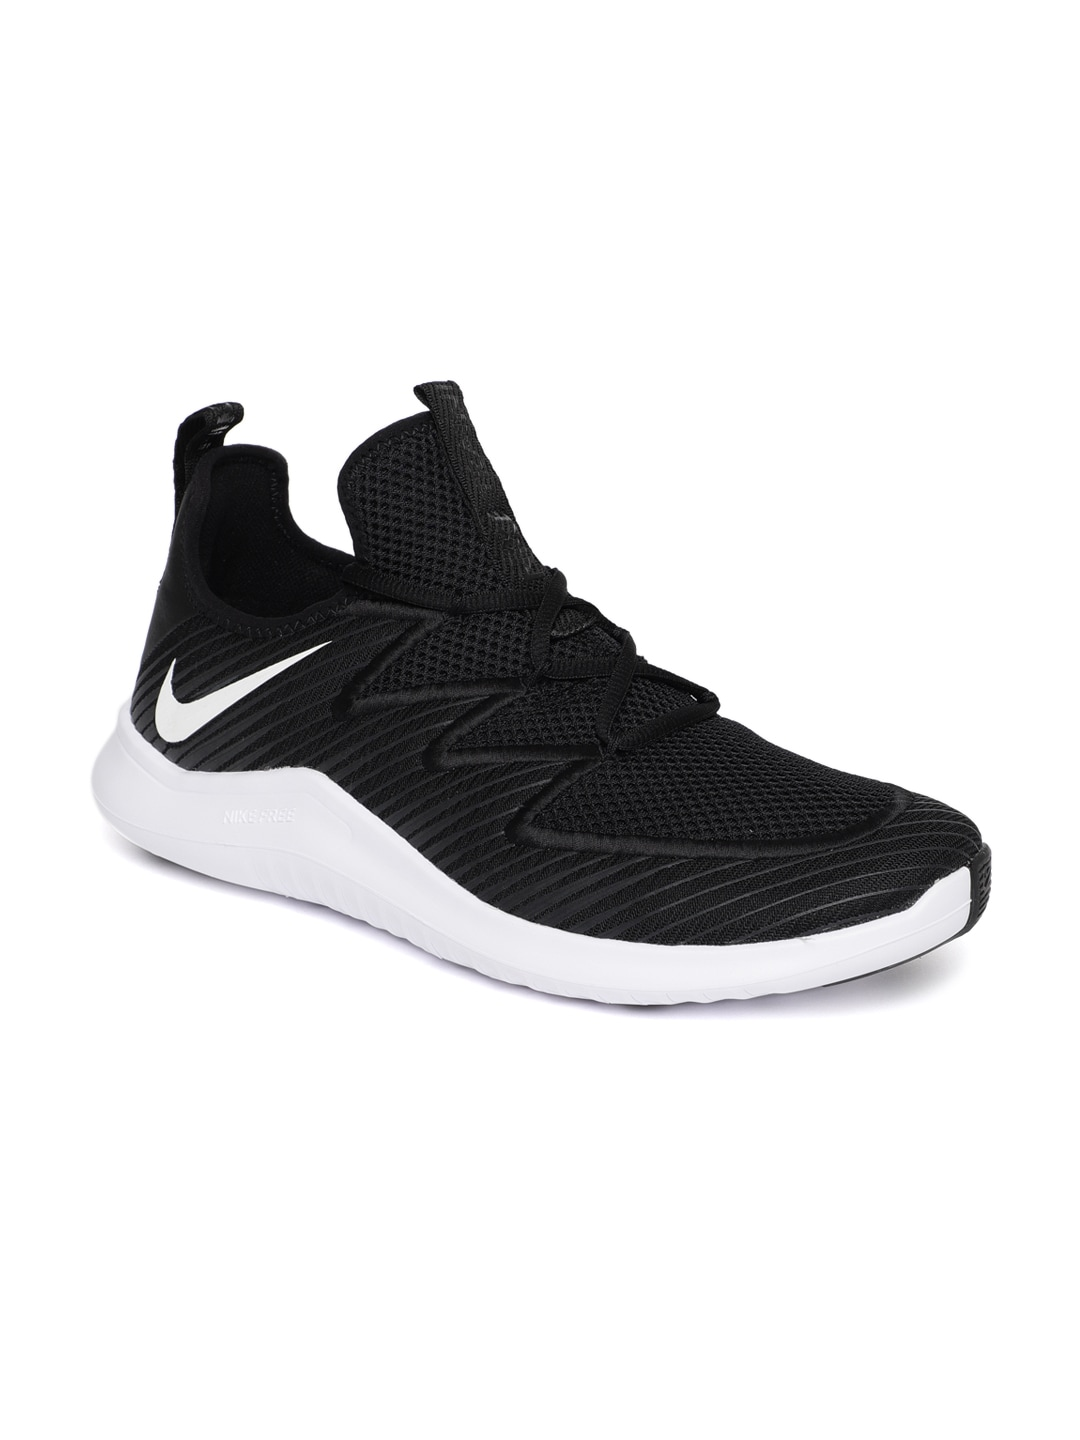 4865852d25e79 Nike Training Shoes - Buy Nike Training Shoes For Men   Women in India